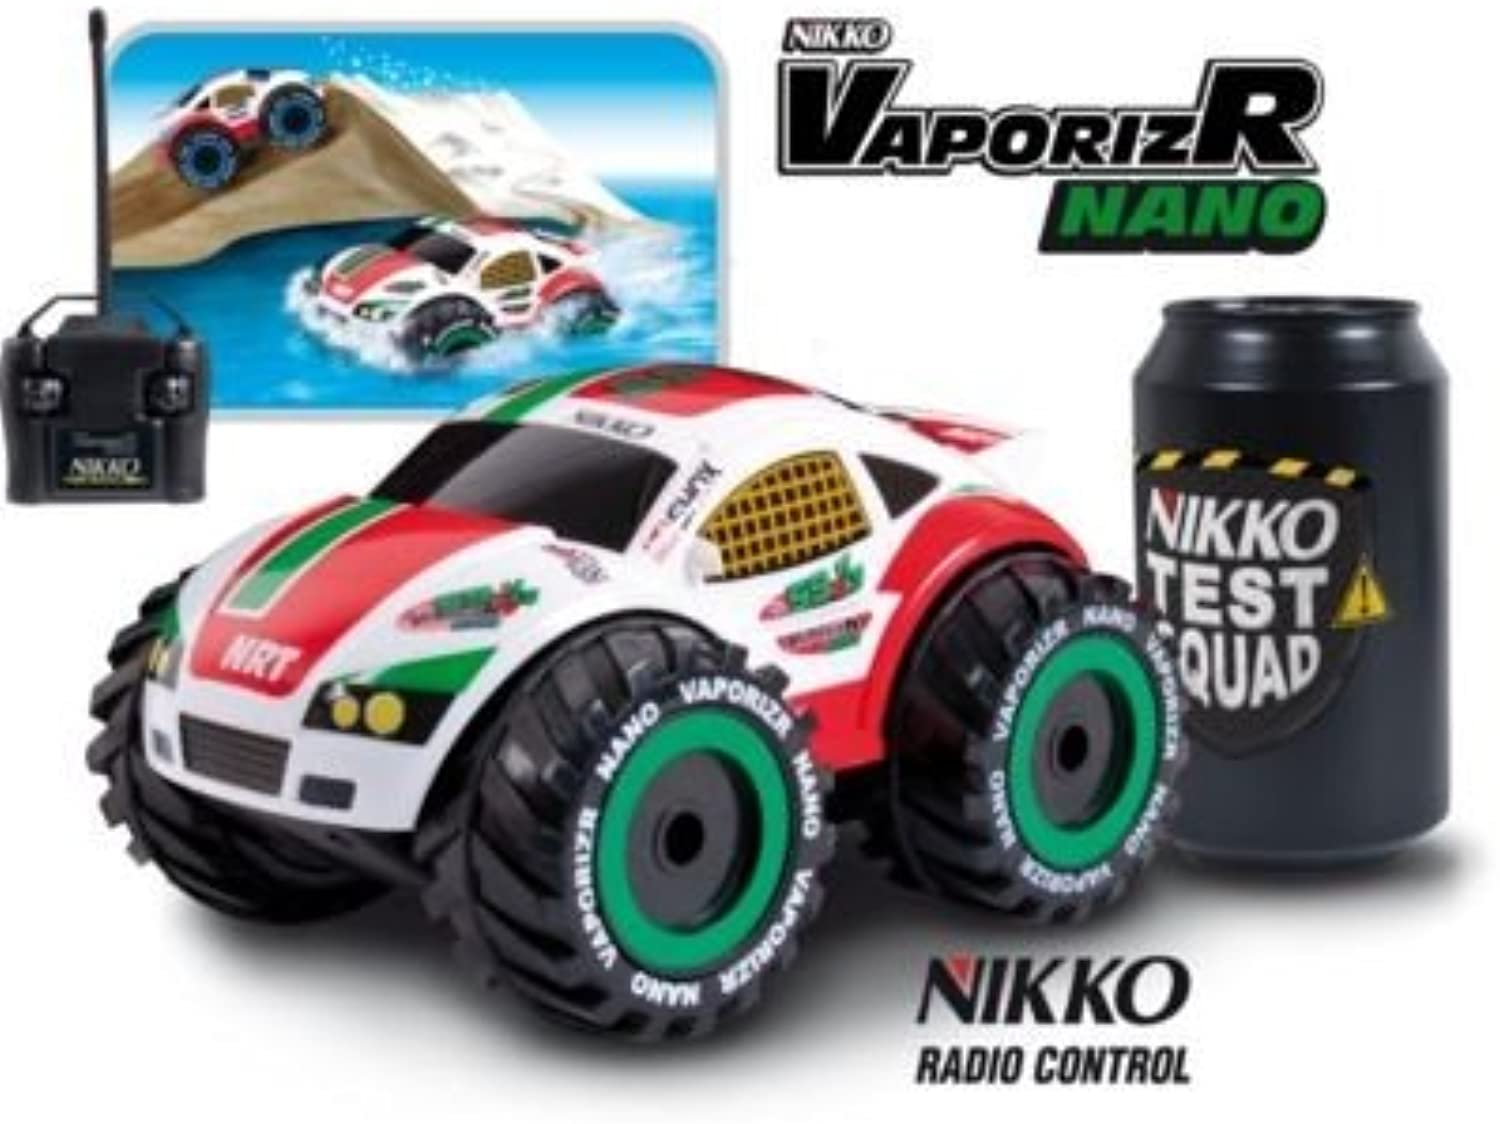 Marvelous Nano Vaporizr Radio Controlled Car